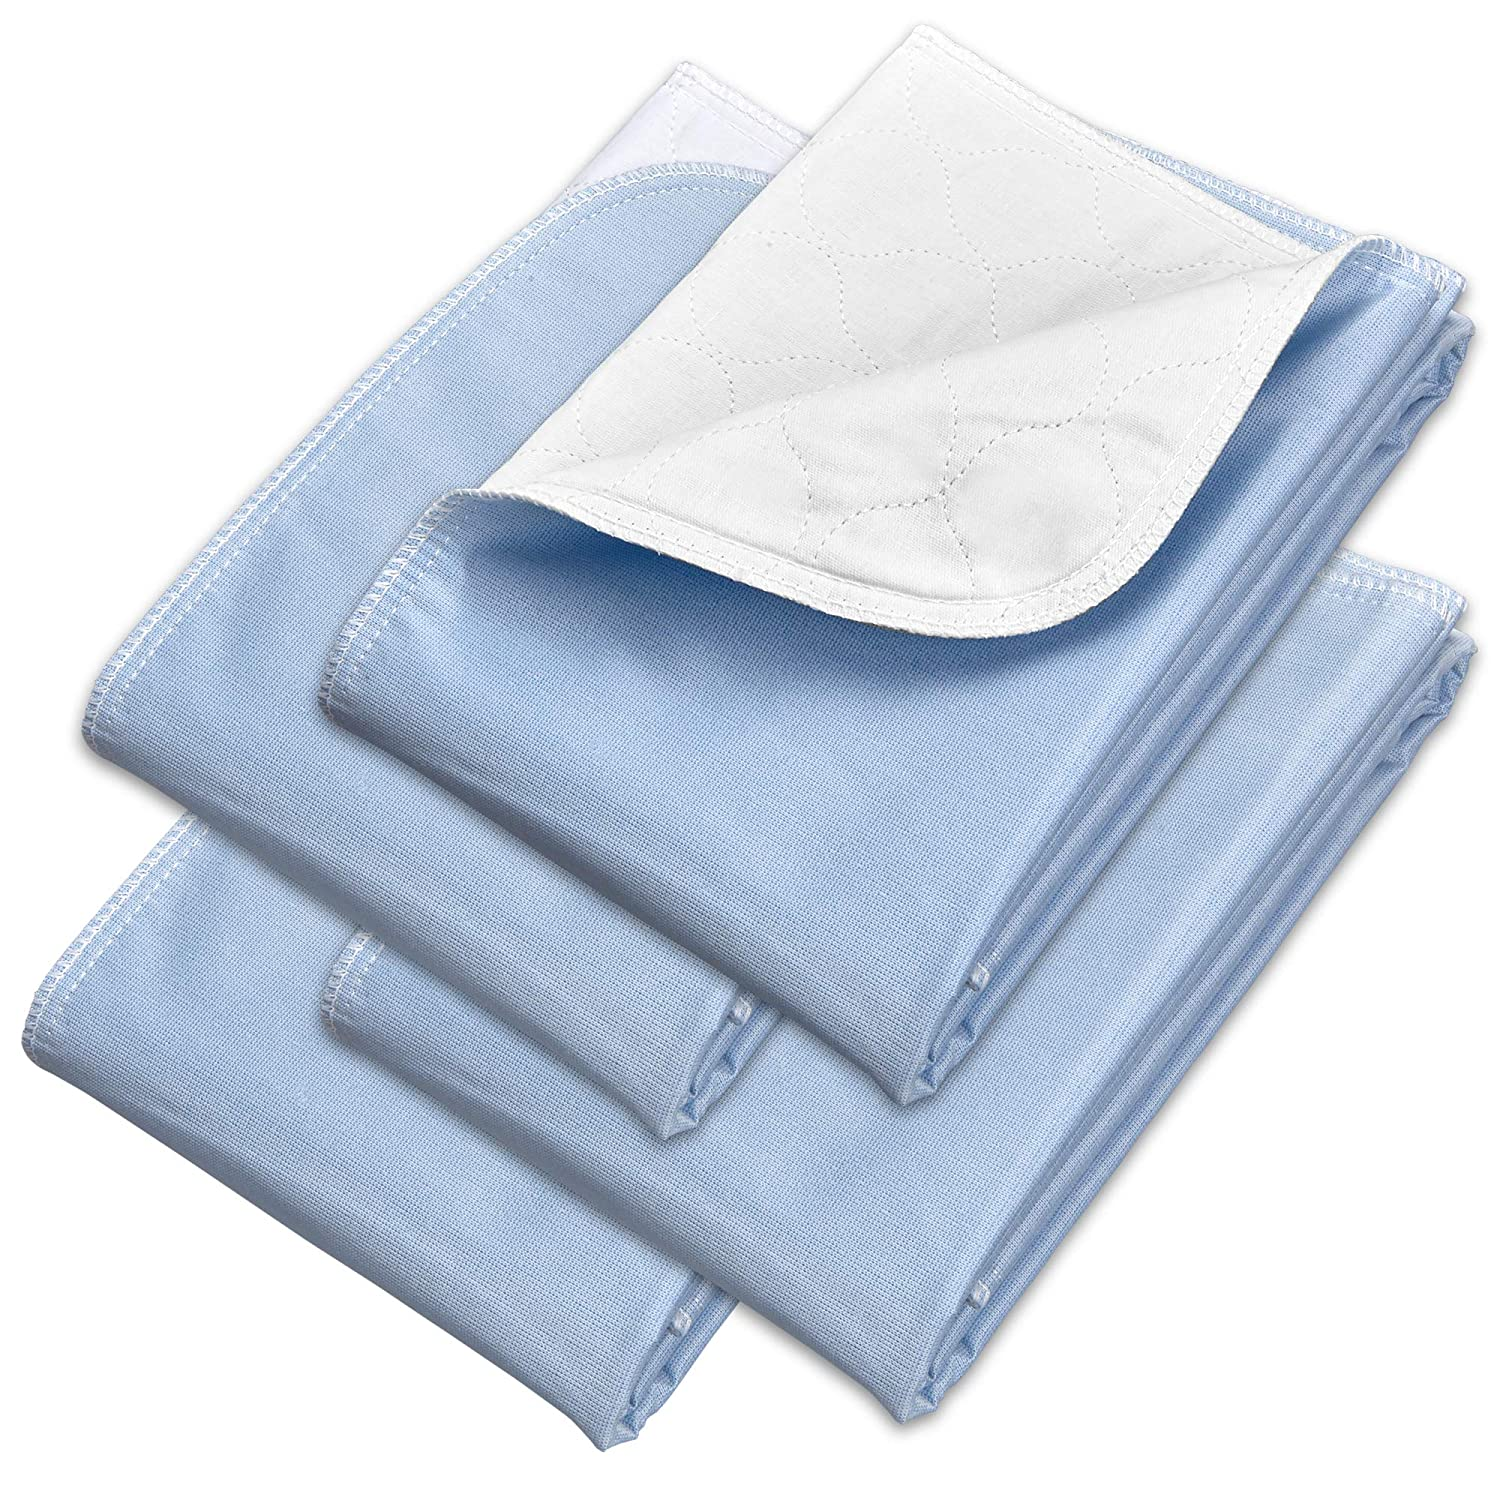 "Incontinence Chair Pads 4 Pack 18"" x 24"" - Reusable Waterproof Underpad Sofa and Mattress Protectors - Highly Absorbent, Machine Washable - for Children, Pets and Seniors- Blue - Royal Care"